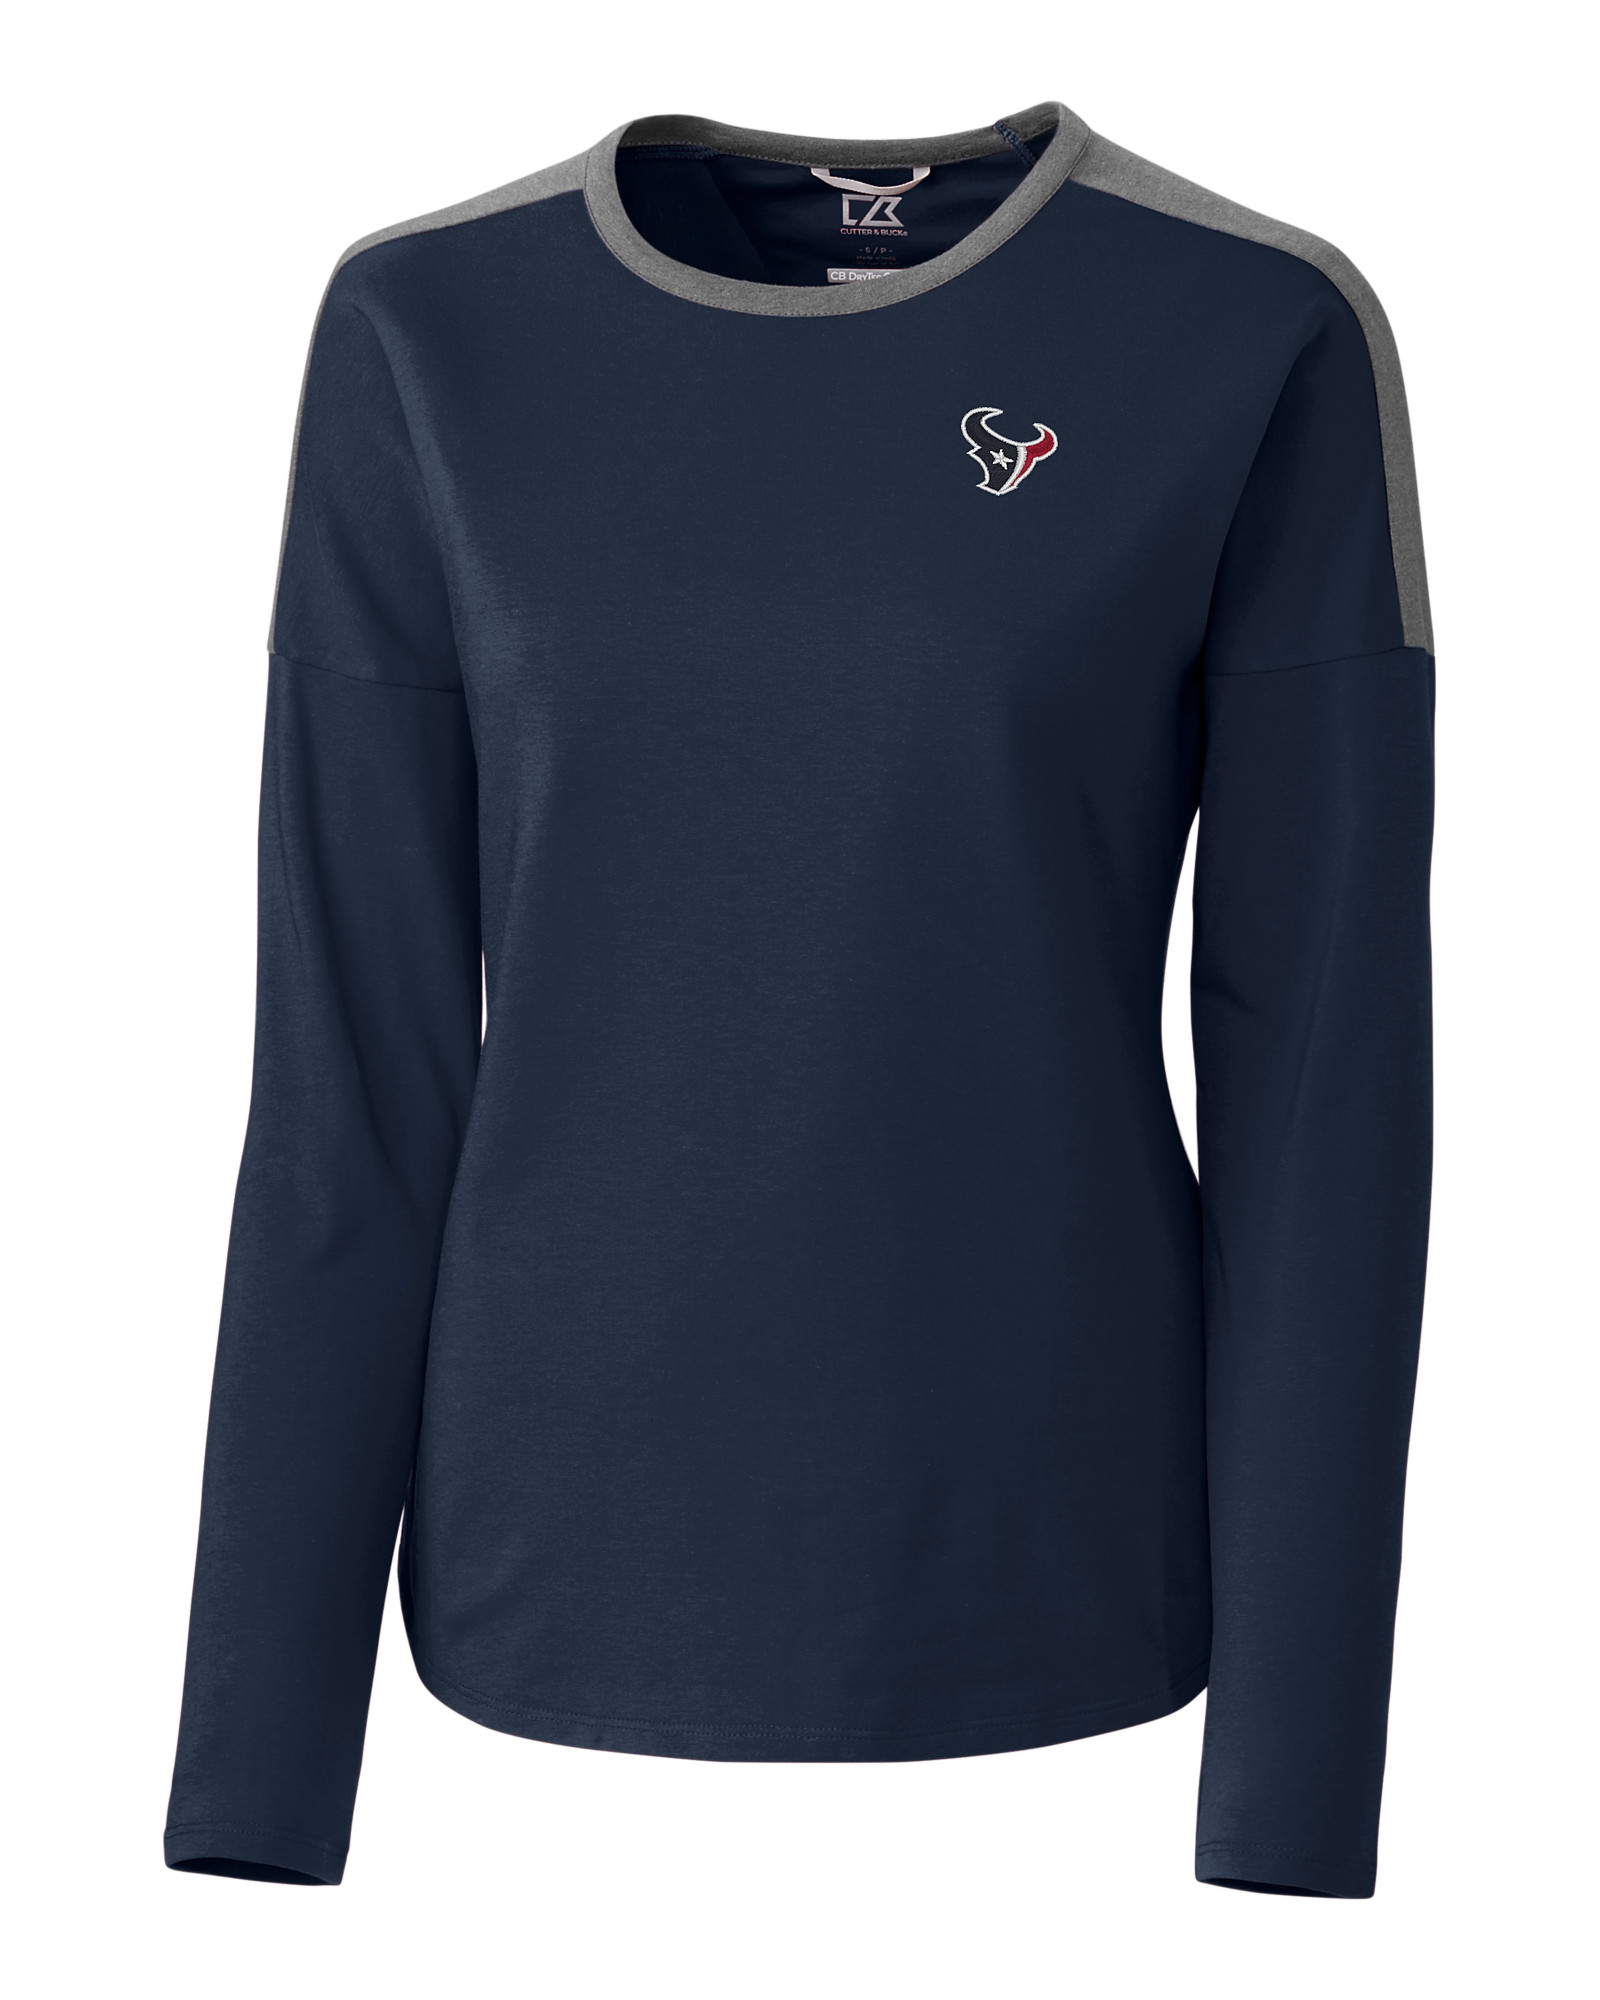 6cec482a Houston Texans Ladies' Cheer Colorblock Tee